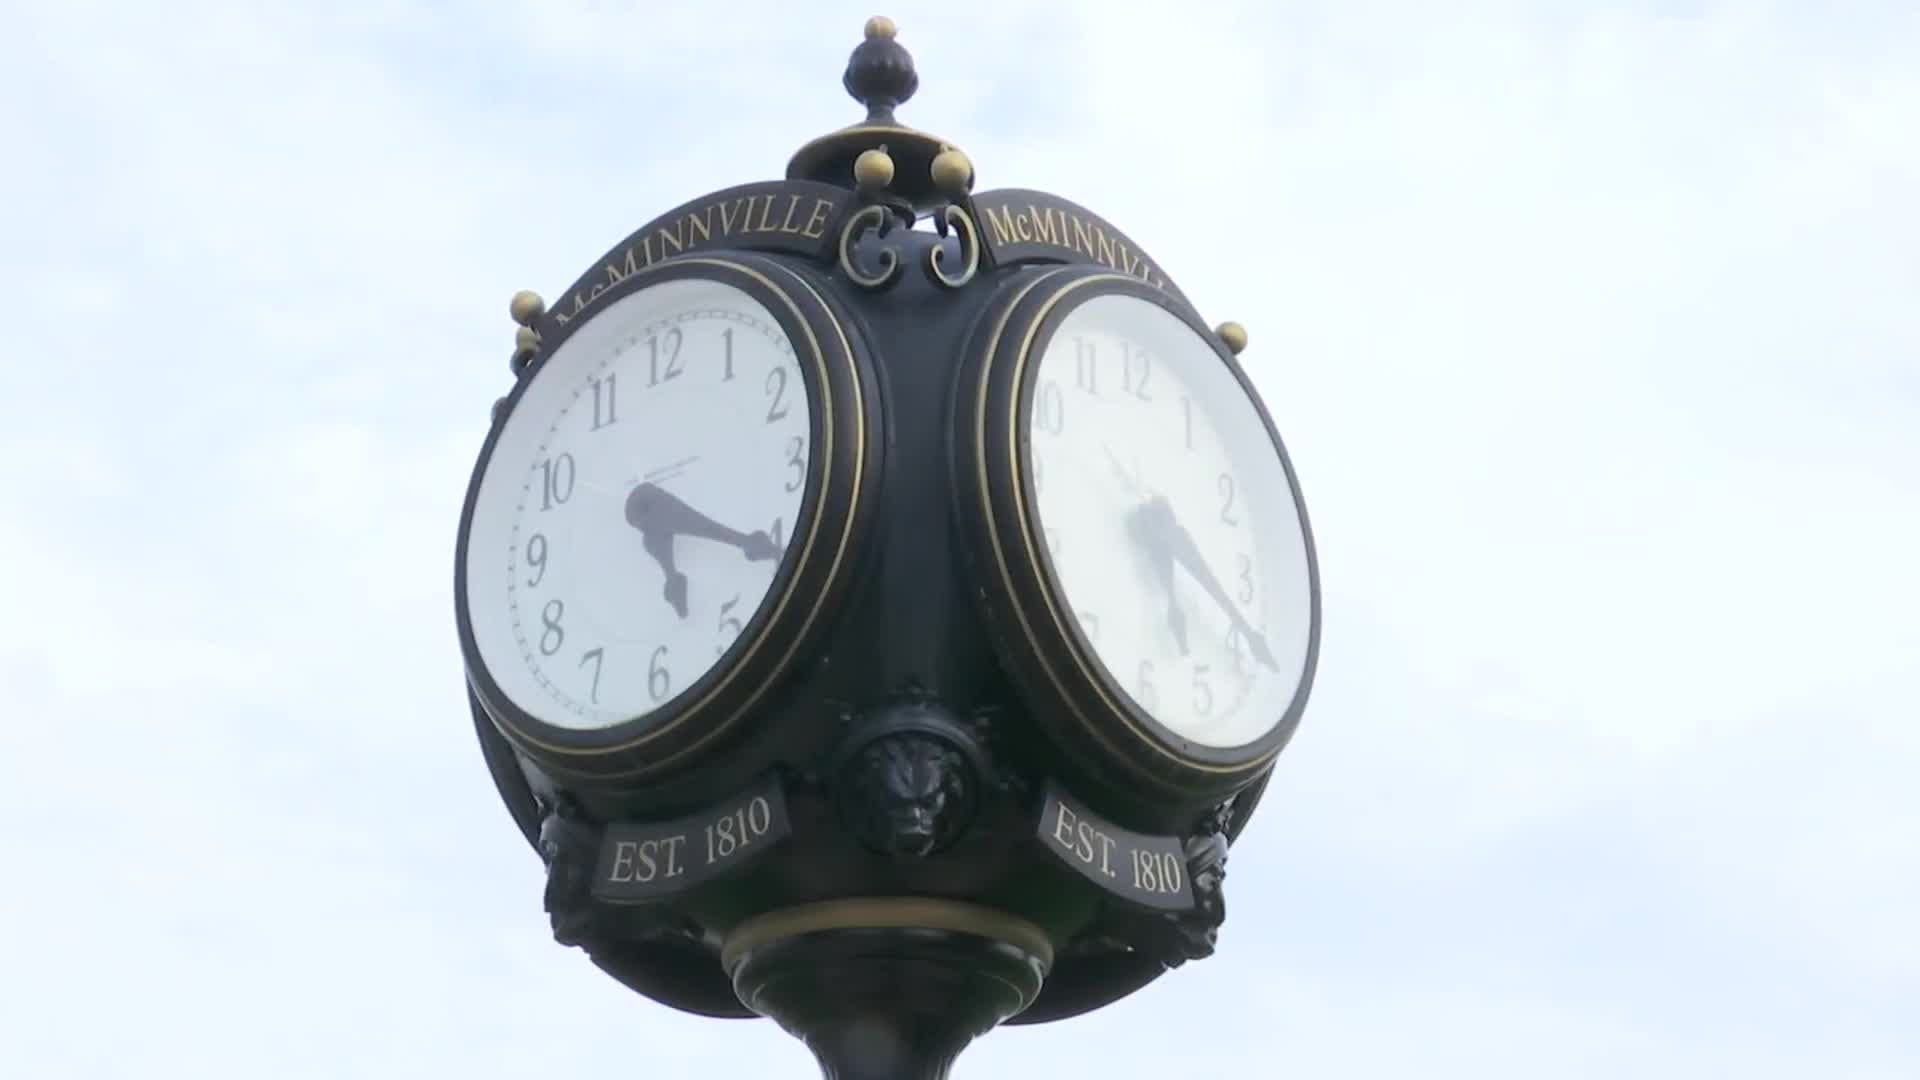 McMinnville Town Clock